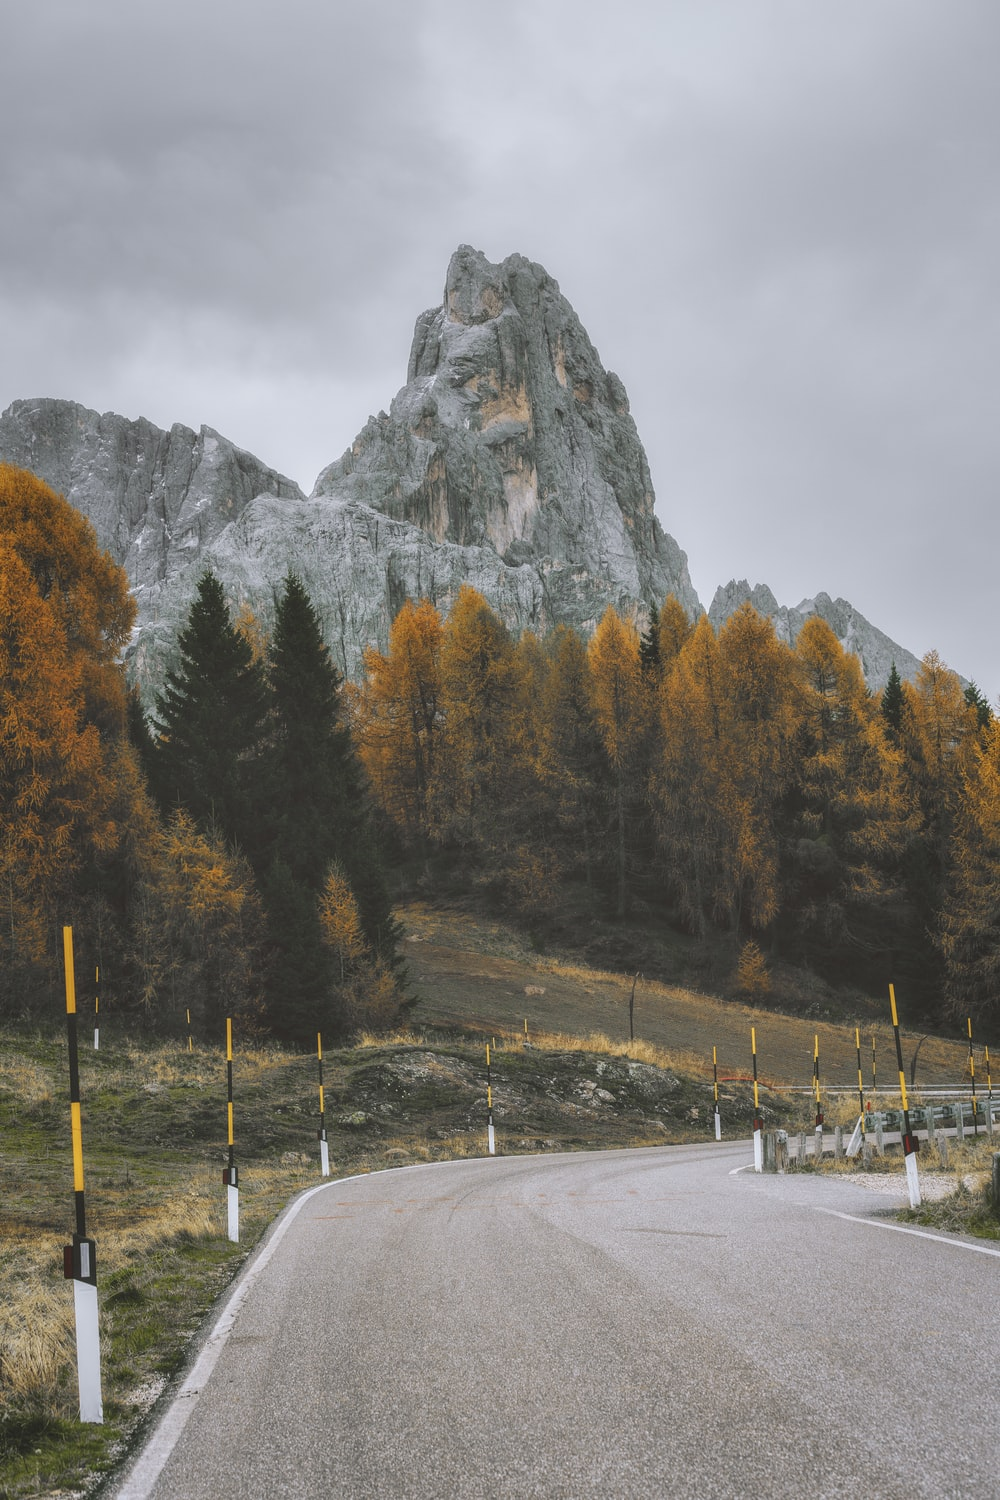 asphalt road and mountain scenery